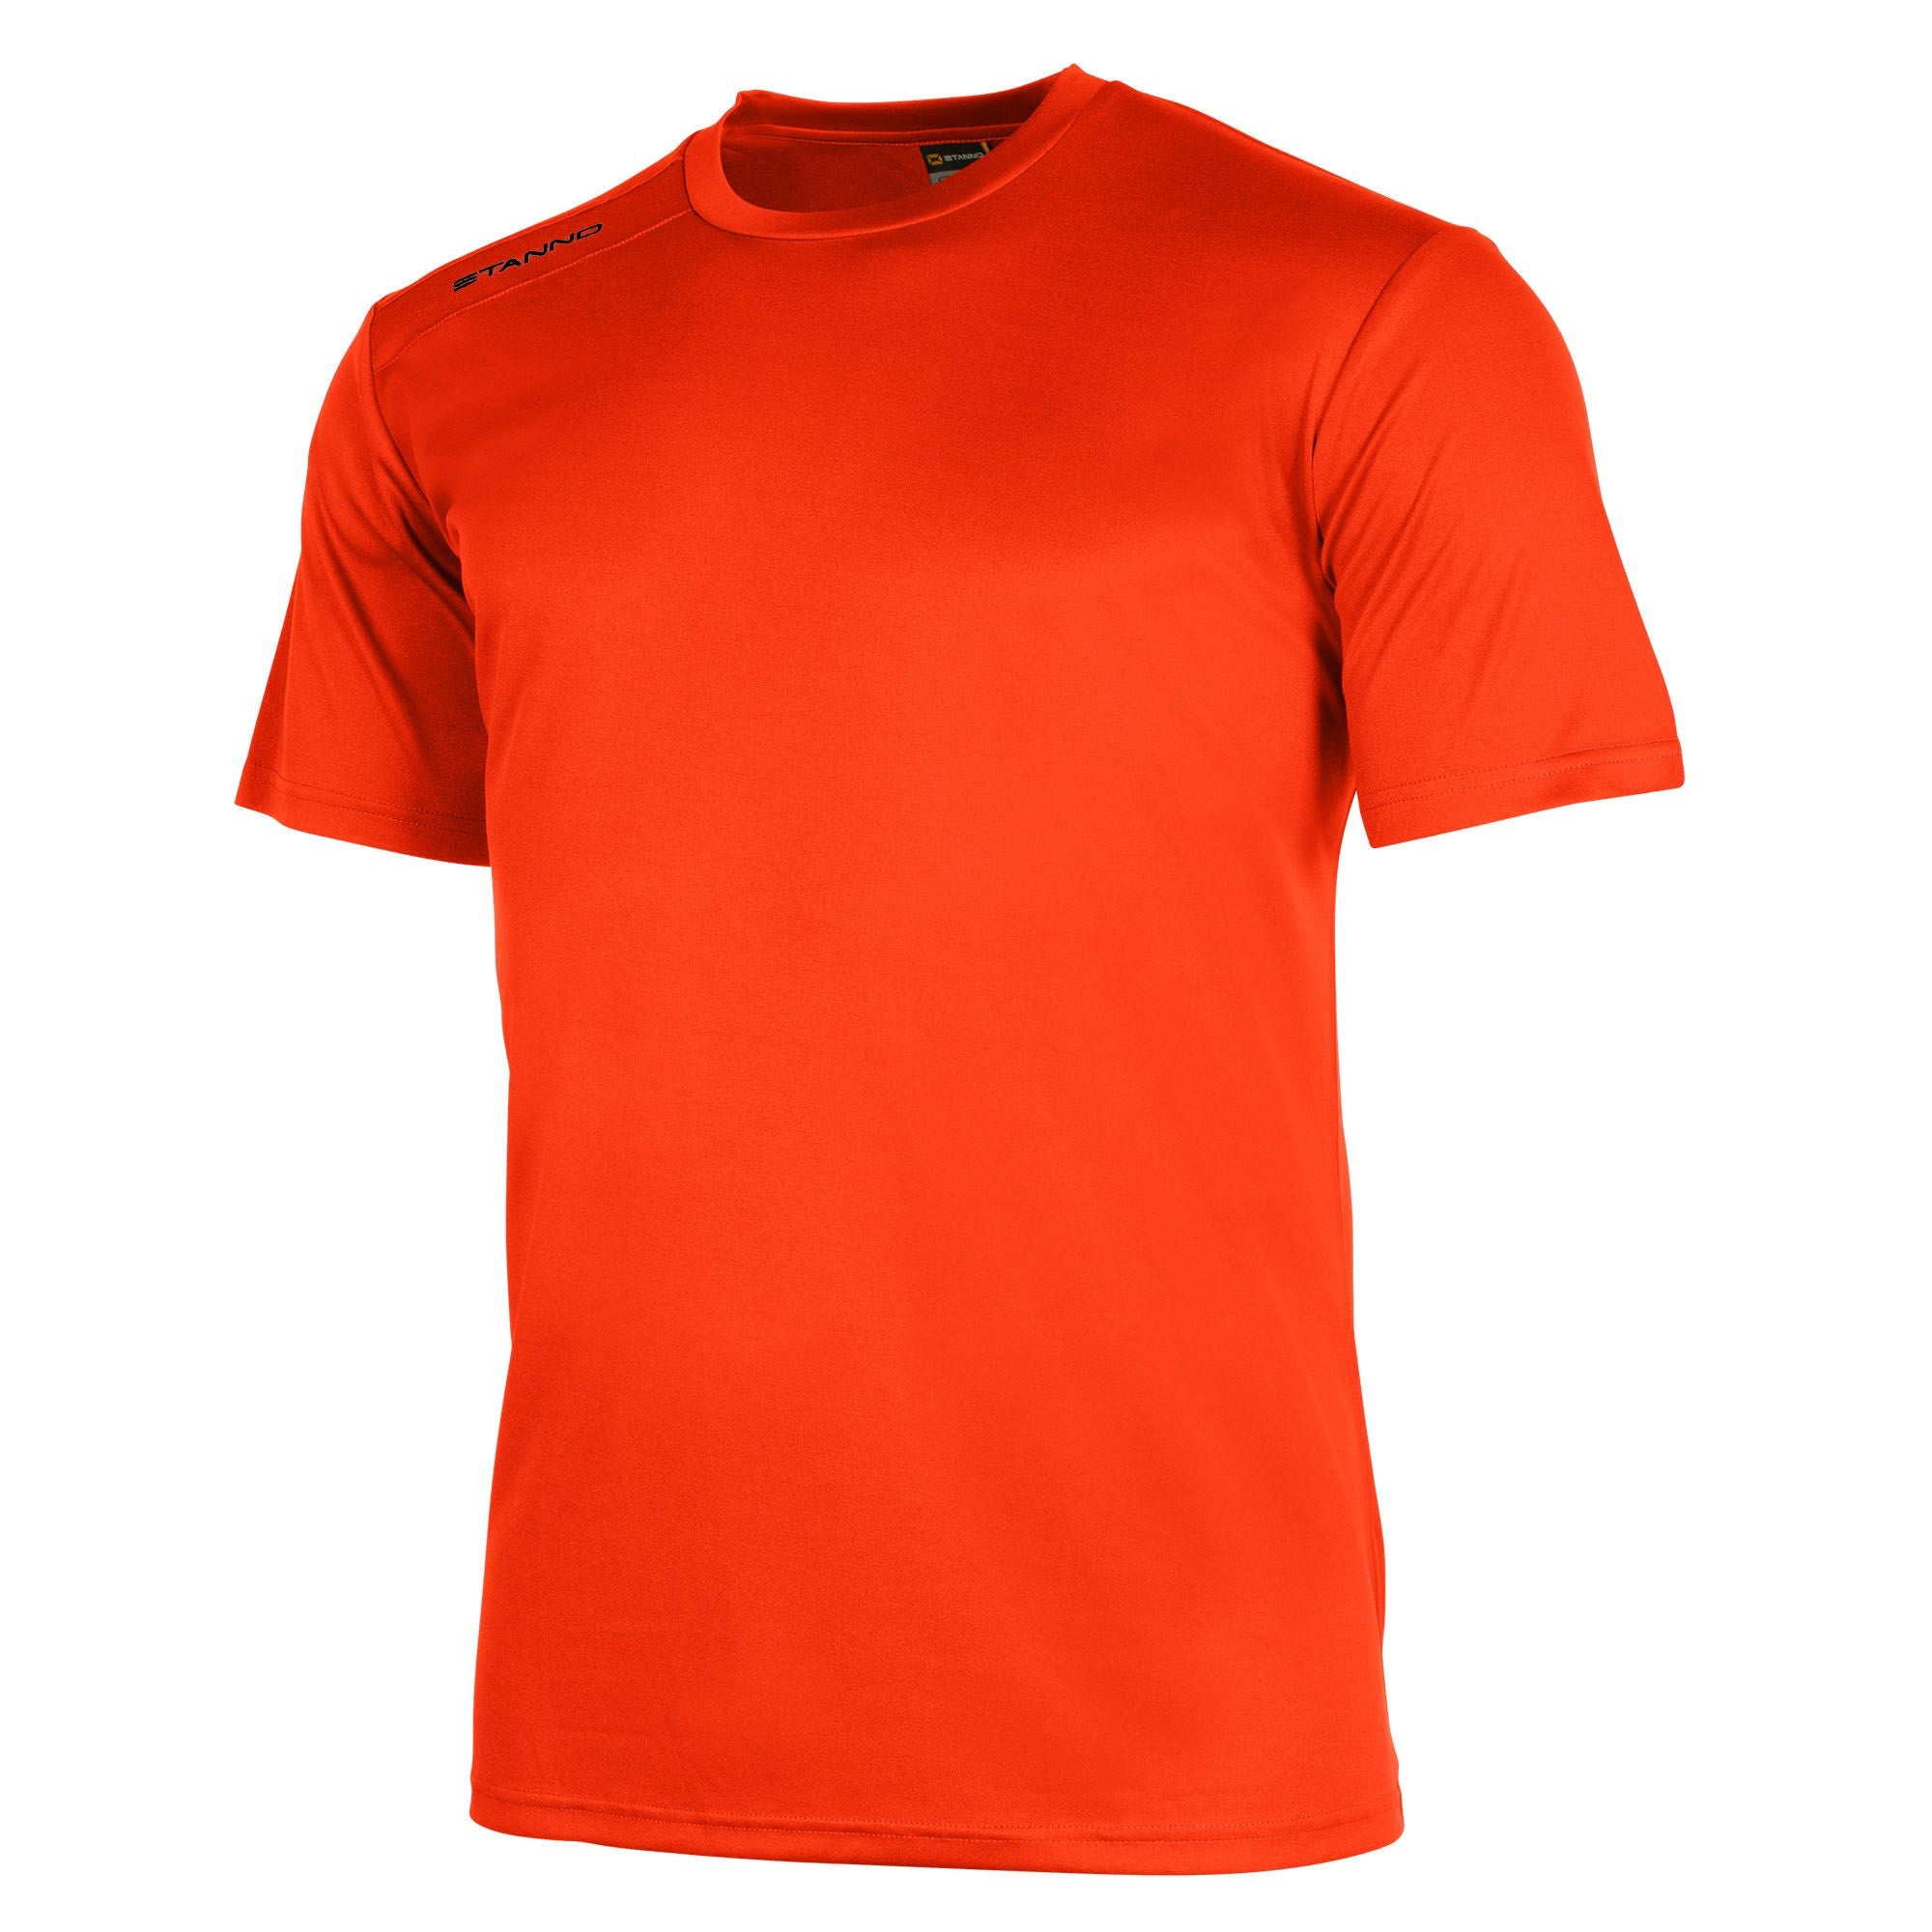 Front of Stanno field short sleeve shirt in shocking orange with black Stanno logo on right shoulder